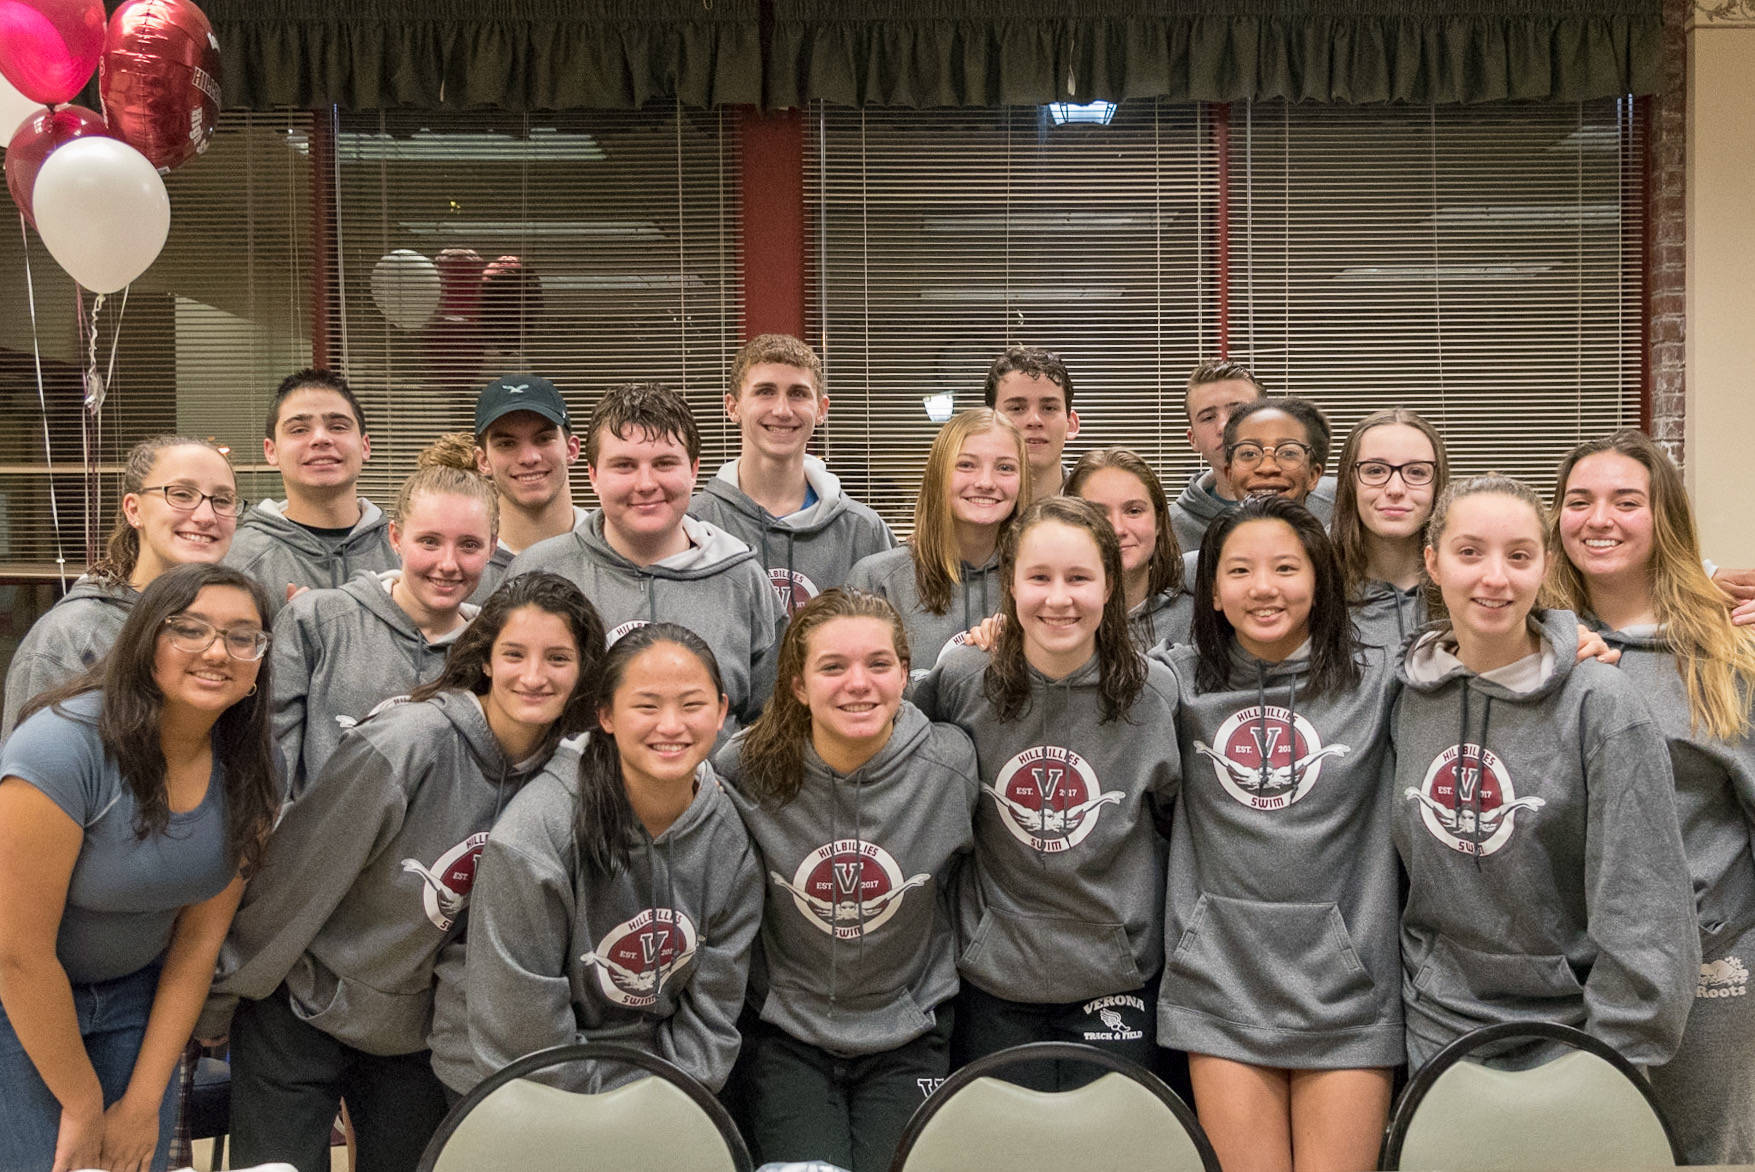 07321117402a65a25a23_Swim_Team_Team_Photo.jpeg